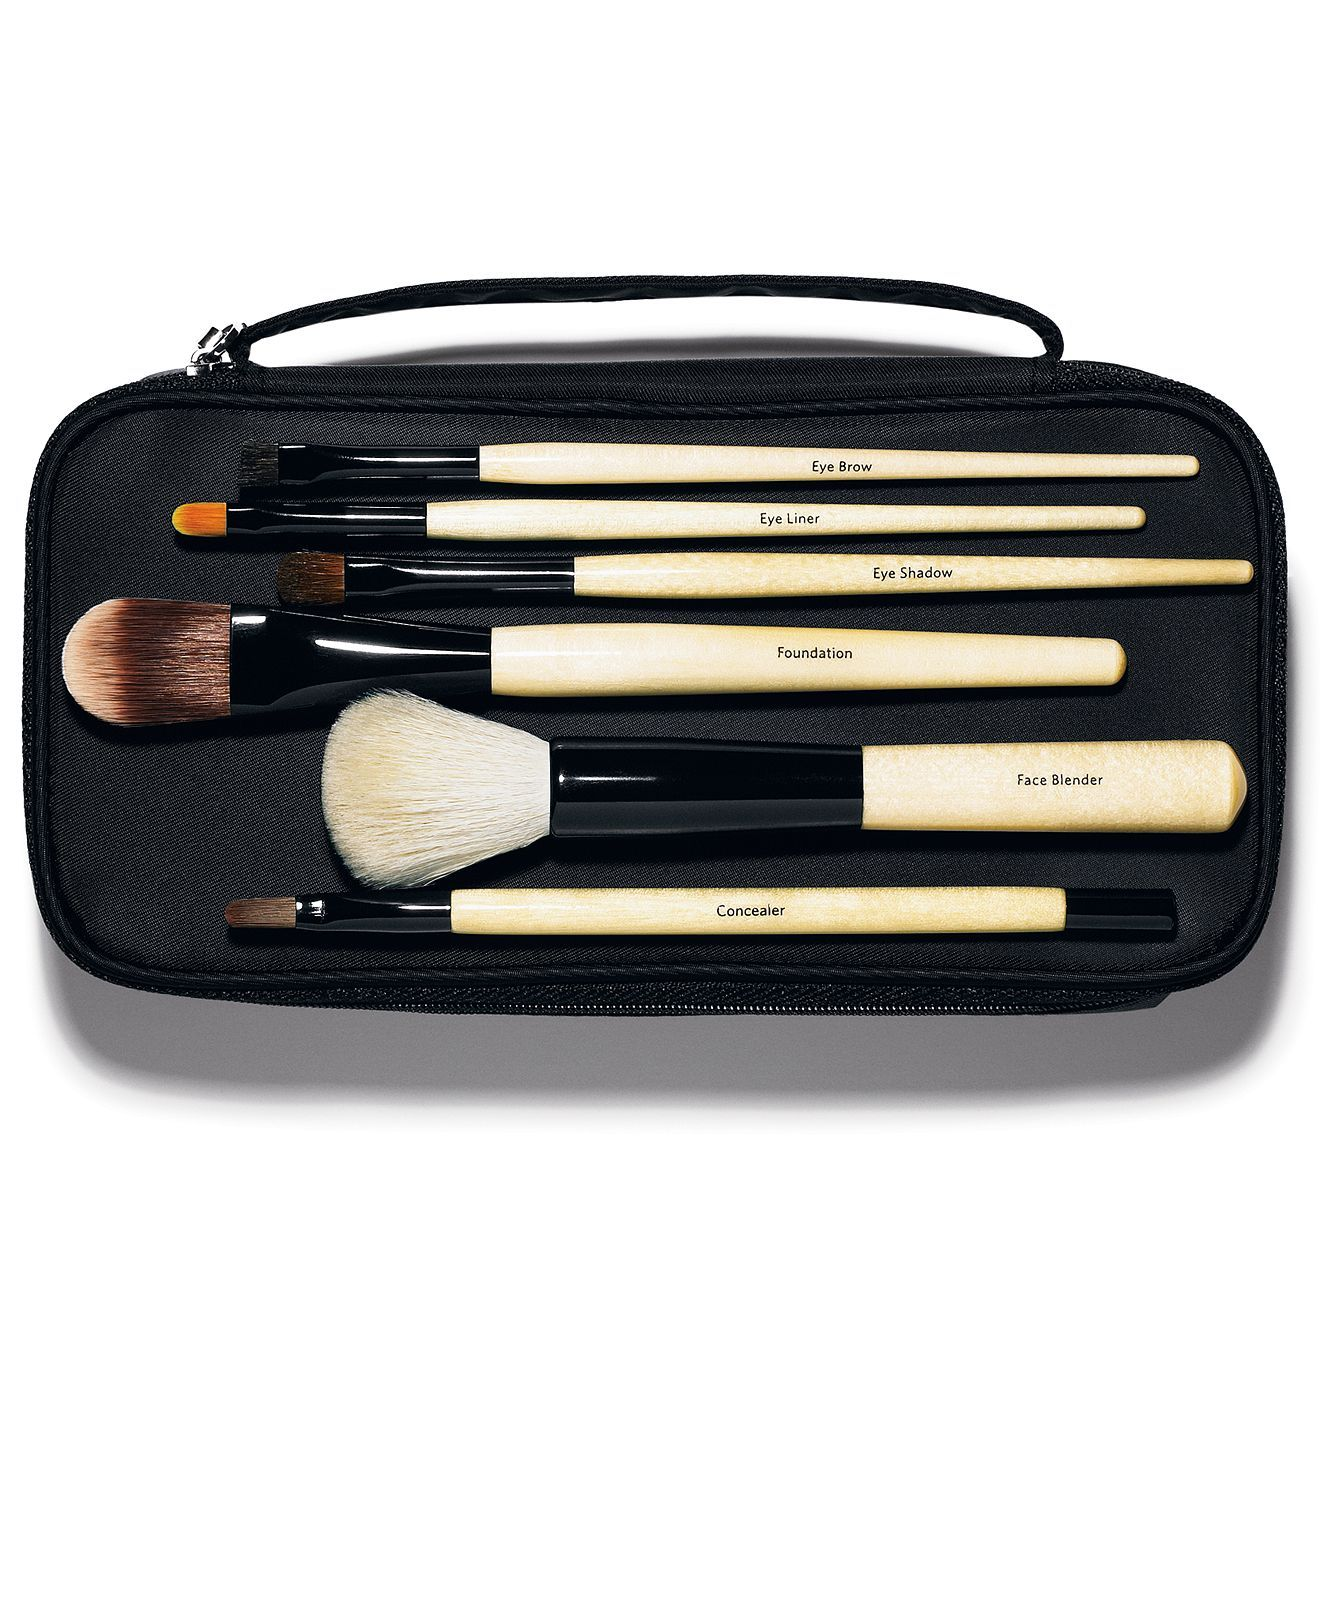 Drool. My DREAM brush kit from Bobbi Brown. Since I